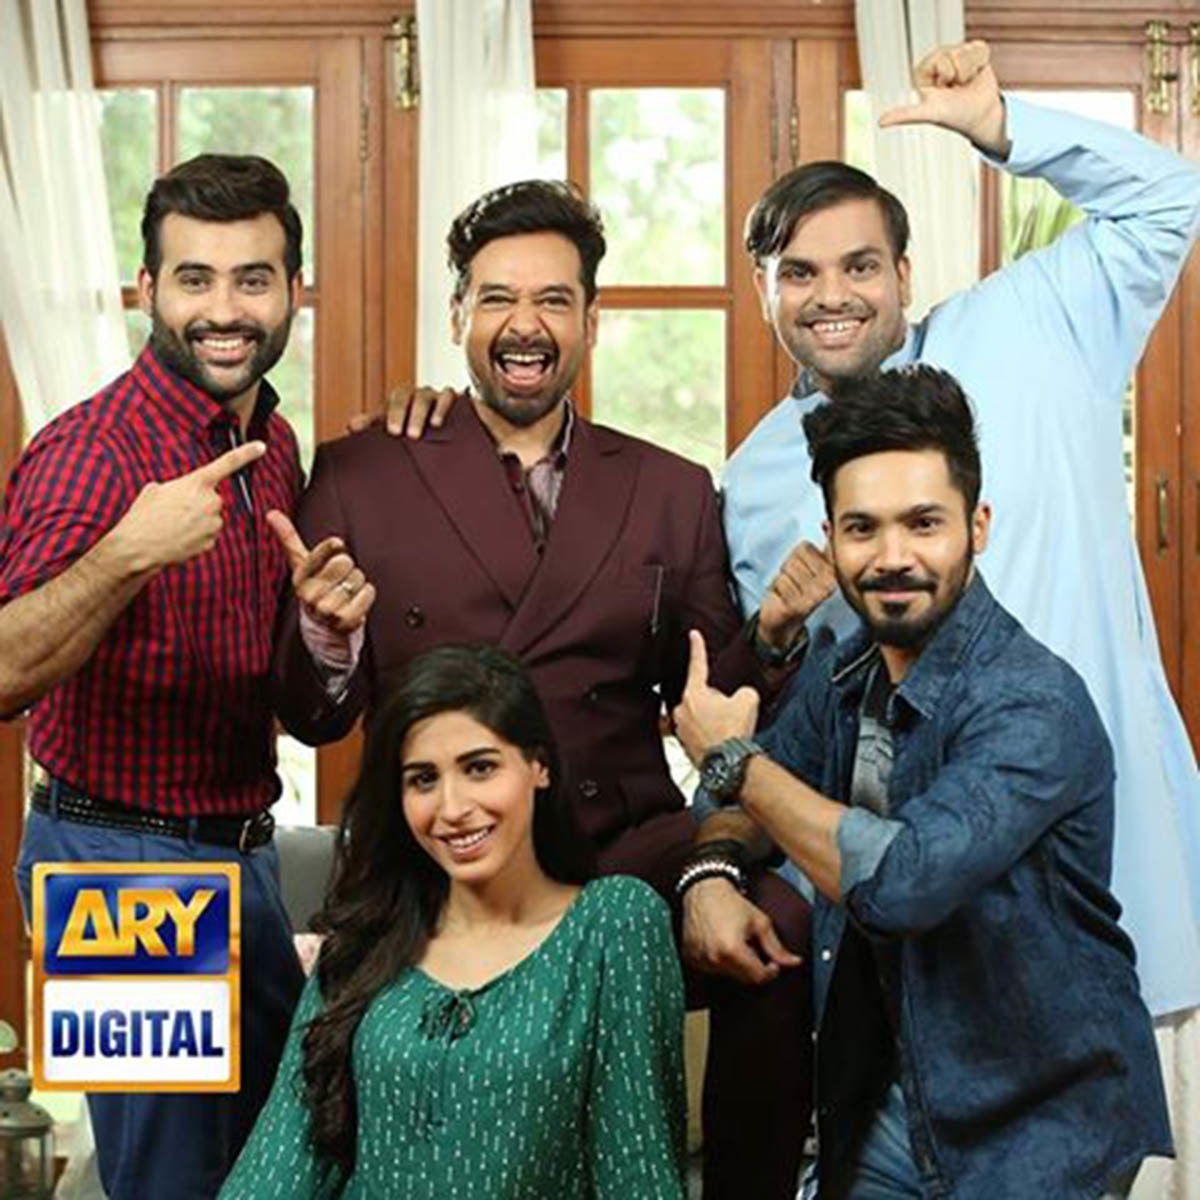 The actors pose with Faysal Quraishi who will be making guest appearances as Faizan's father in the sequel.